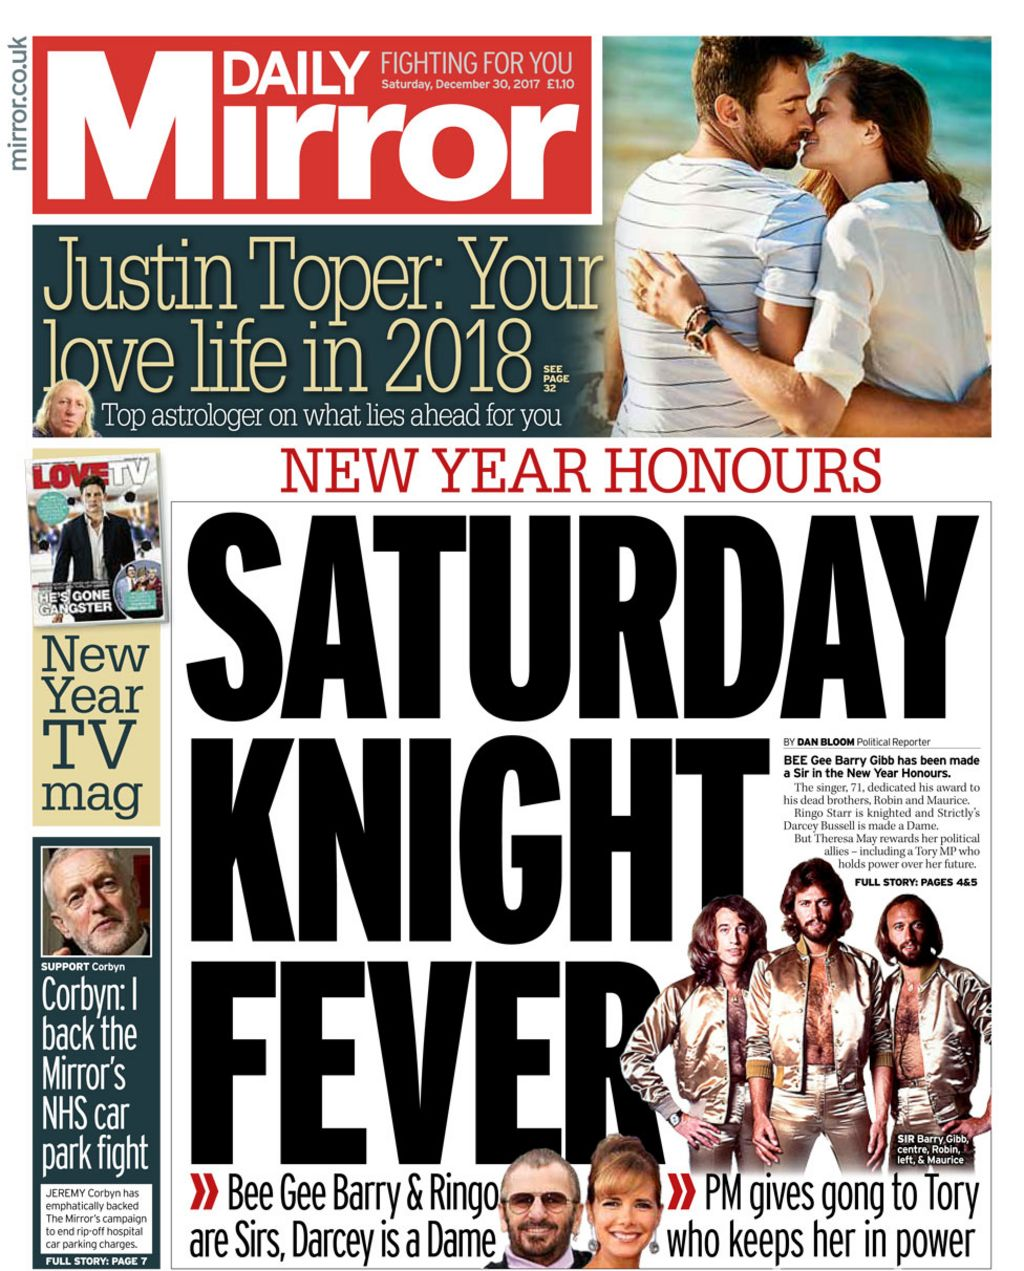 Newspaper Headlines: It's 'Saturday Knight Fever' As New